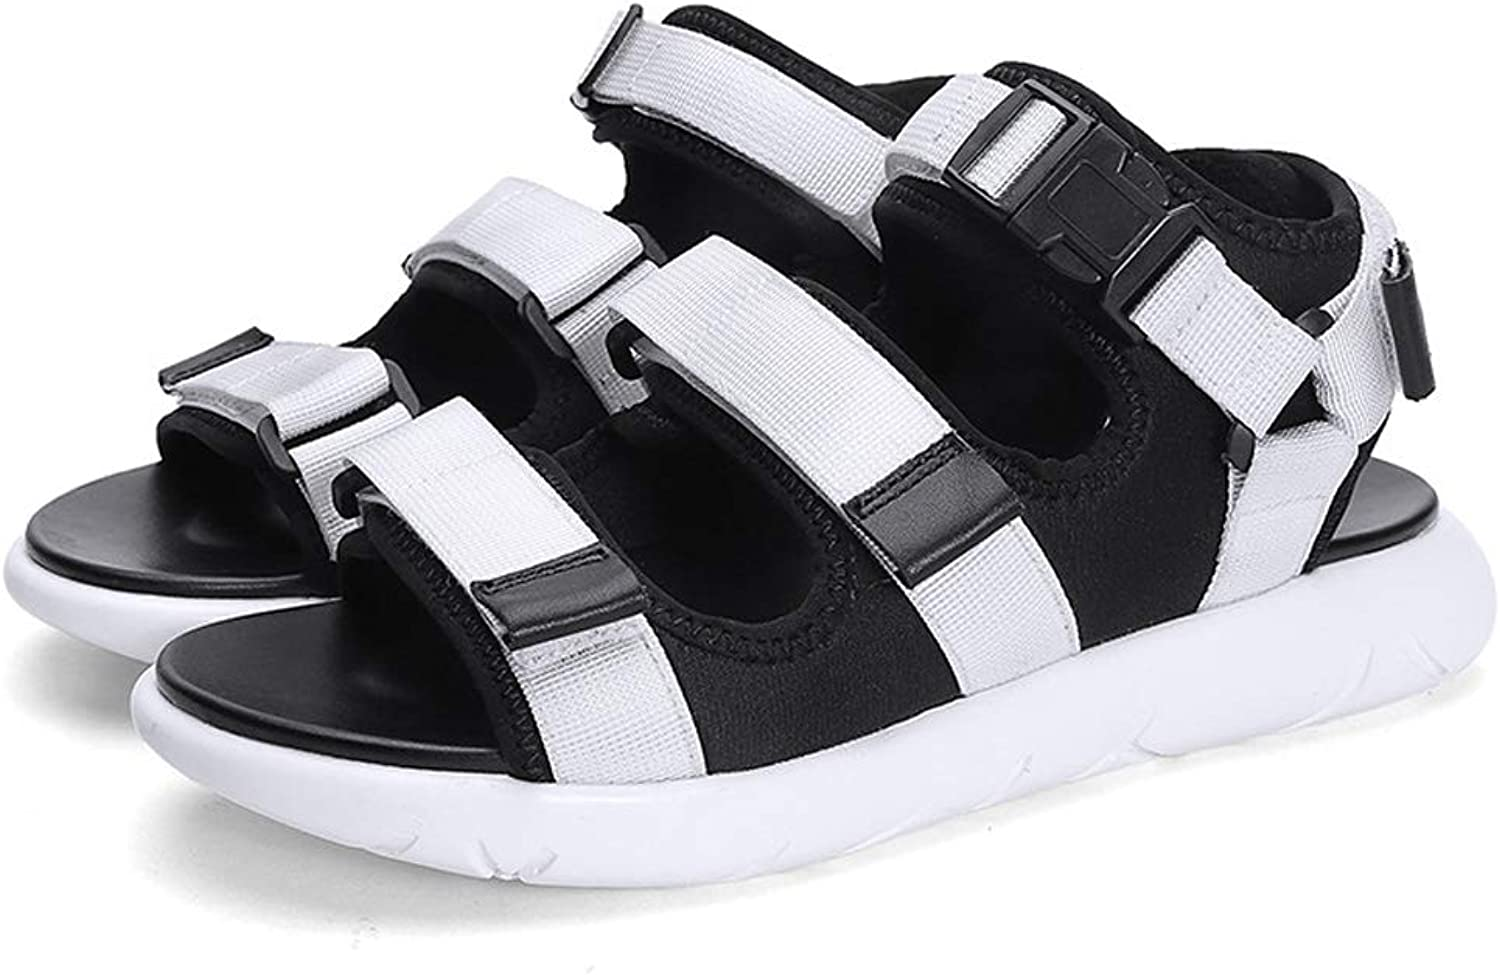 Jeff-chy Men's Sandals Spring And Summer Fashion Casual Men's Beach shoes Student Trend Breathable Sandals And Slippers